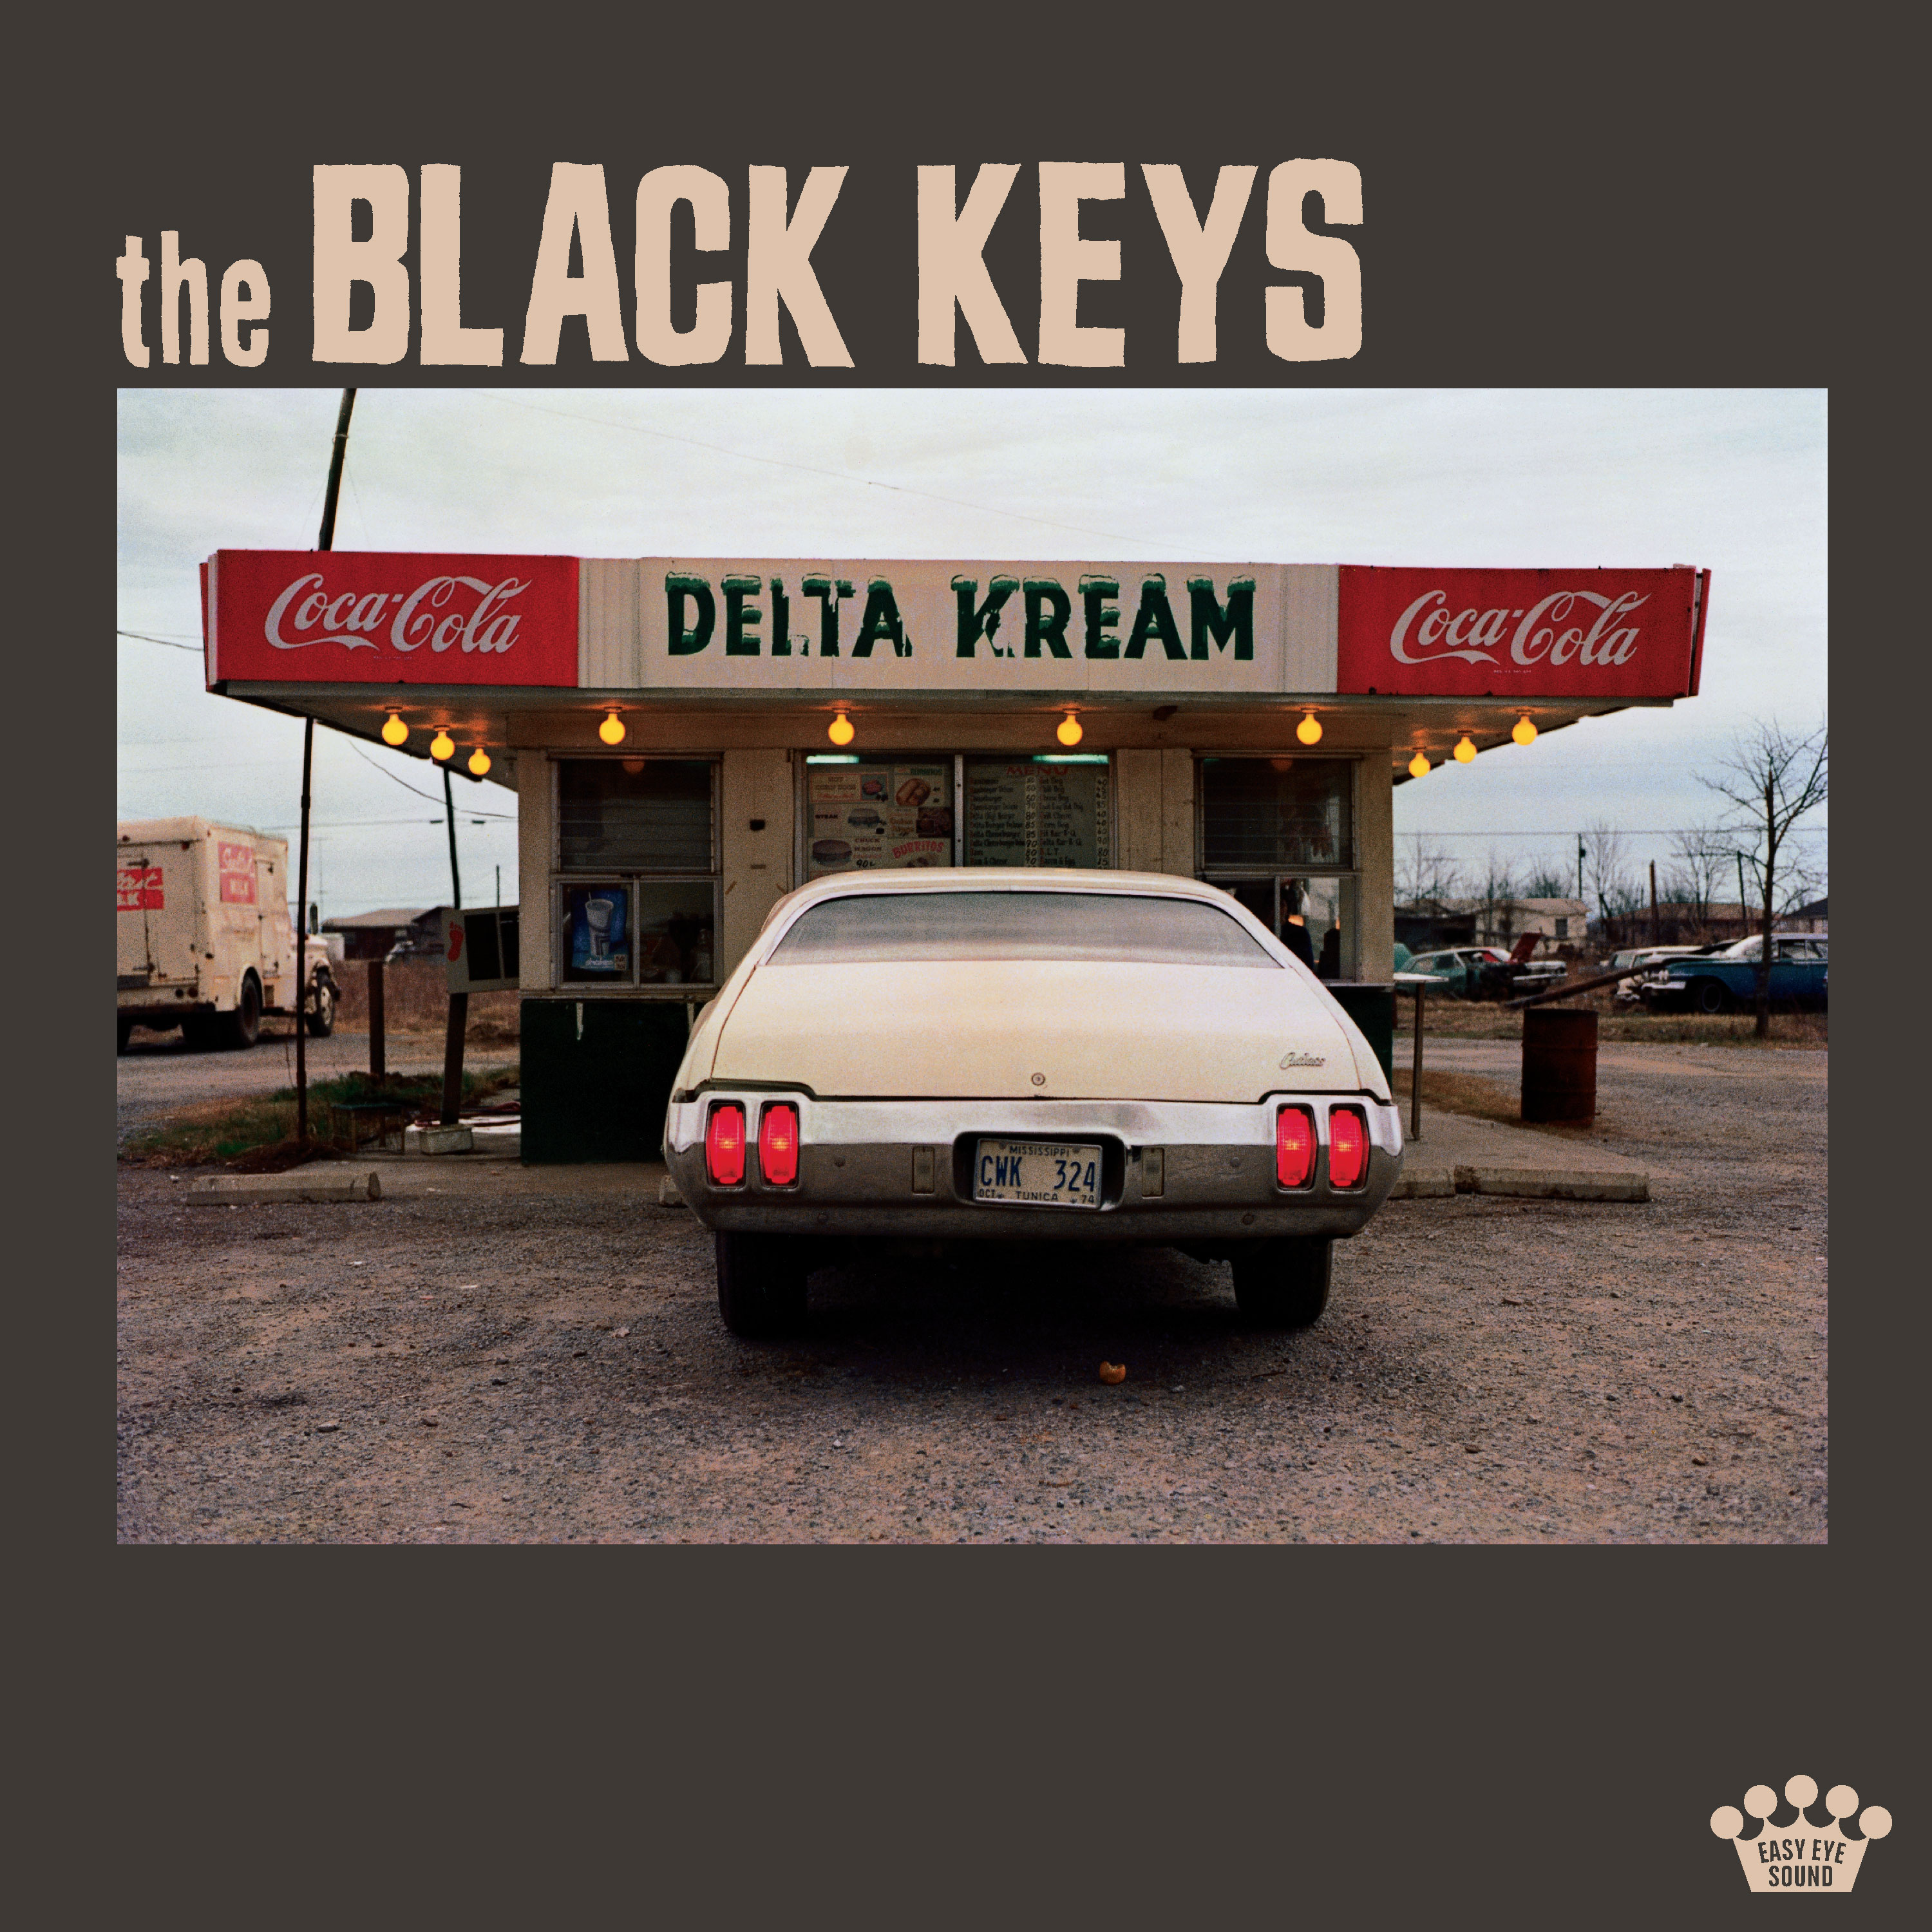 THE BLACK KEYS CELEBRATE MISSISSIPPI HILL COUNTRY BLUES WITH NEW ALBUM DELTA KREAM ON MAY 14